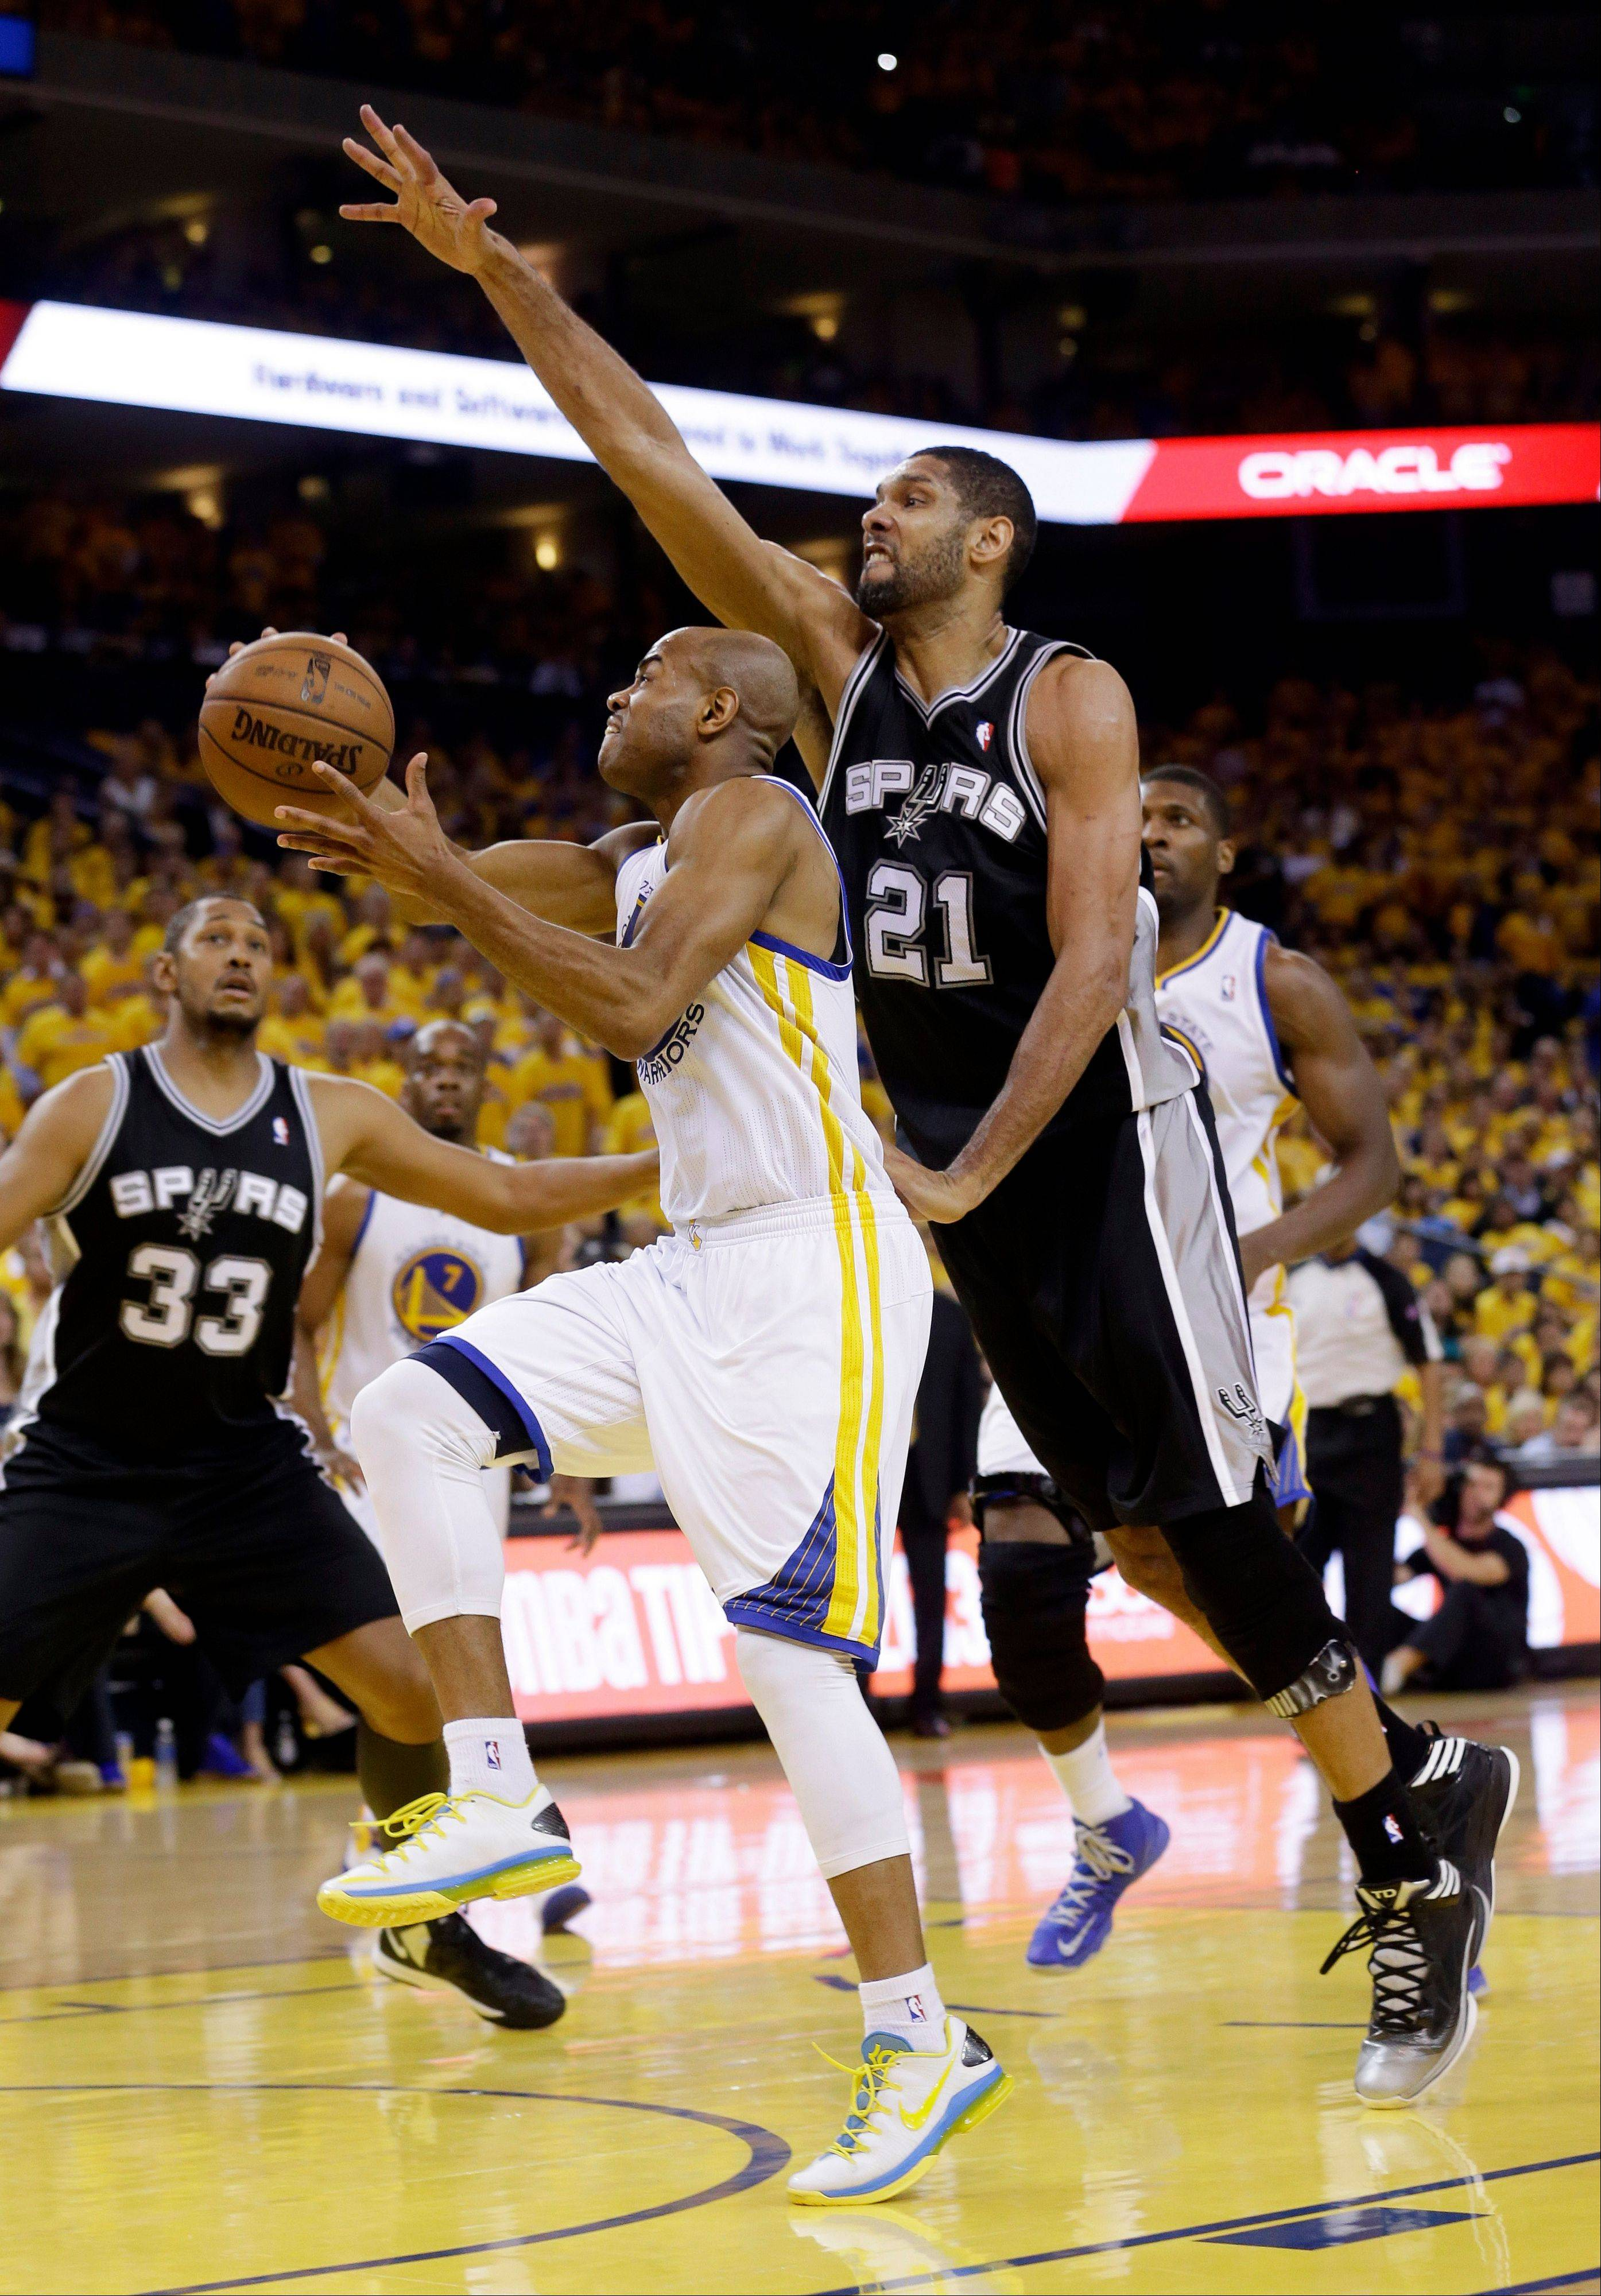 Golden State Warriors point guard Jarrett Jack (2) drives to the basket as San Antonio Spurs forward Tim Duncan (21) attempts to block in the second half of Game 6 of a Western Conference semifinal NBA basketball playoff series in Oakland, Calif., Thursday, May 16, 2013.